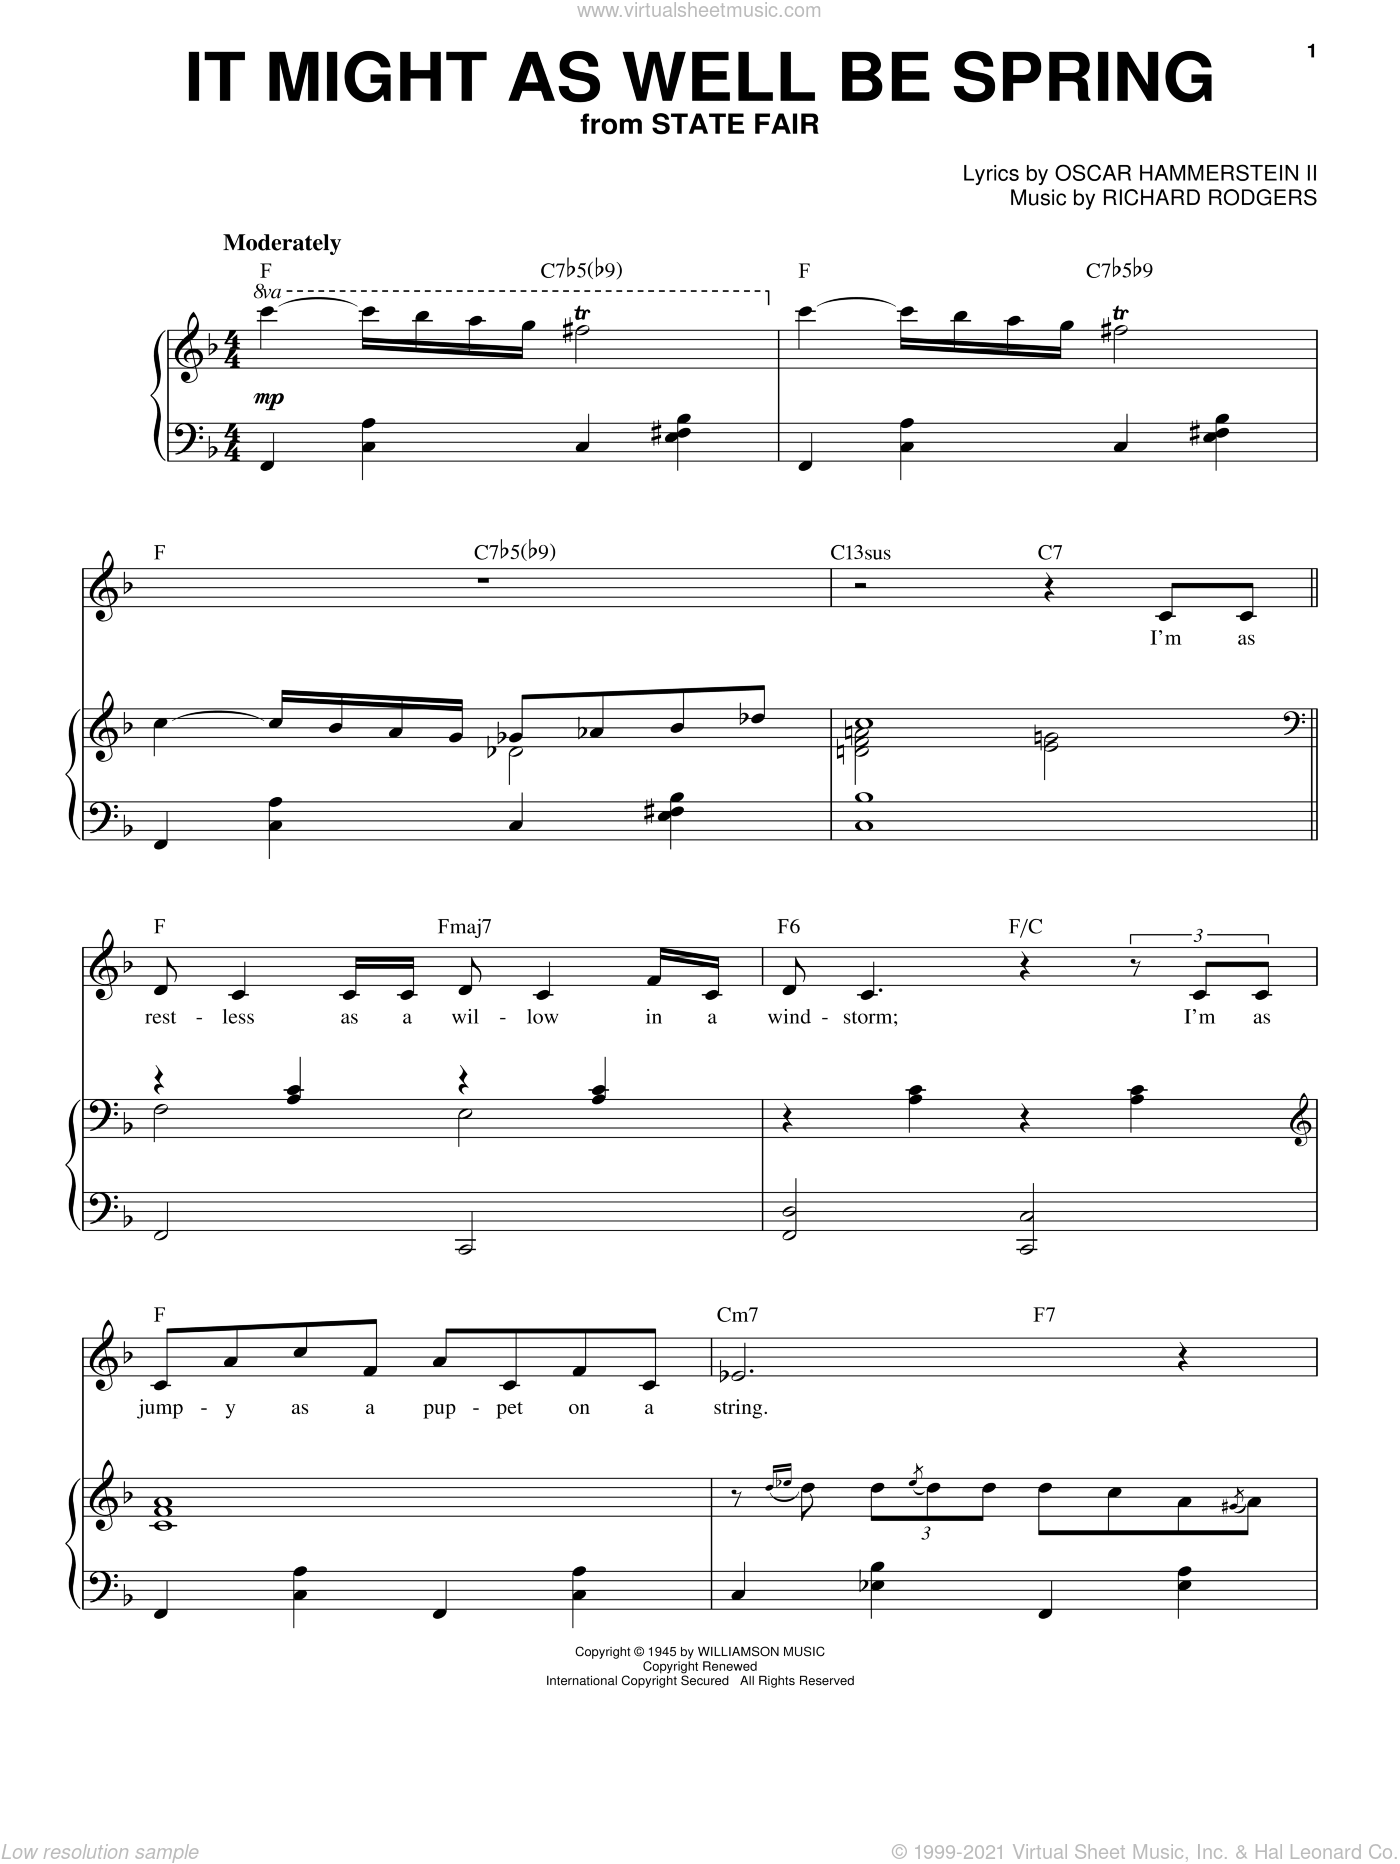 It Might As Well Be Spring sheet music for voice and piano by Frank Sinatra, Rodgers & Hammerstein, Oscar II Hammerstein and Richard Rodgers. Score Image Preview.